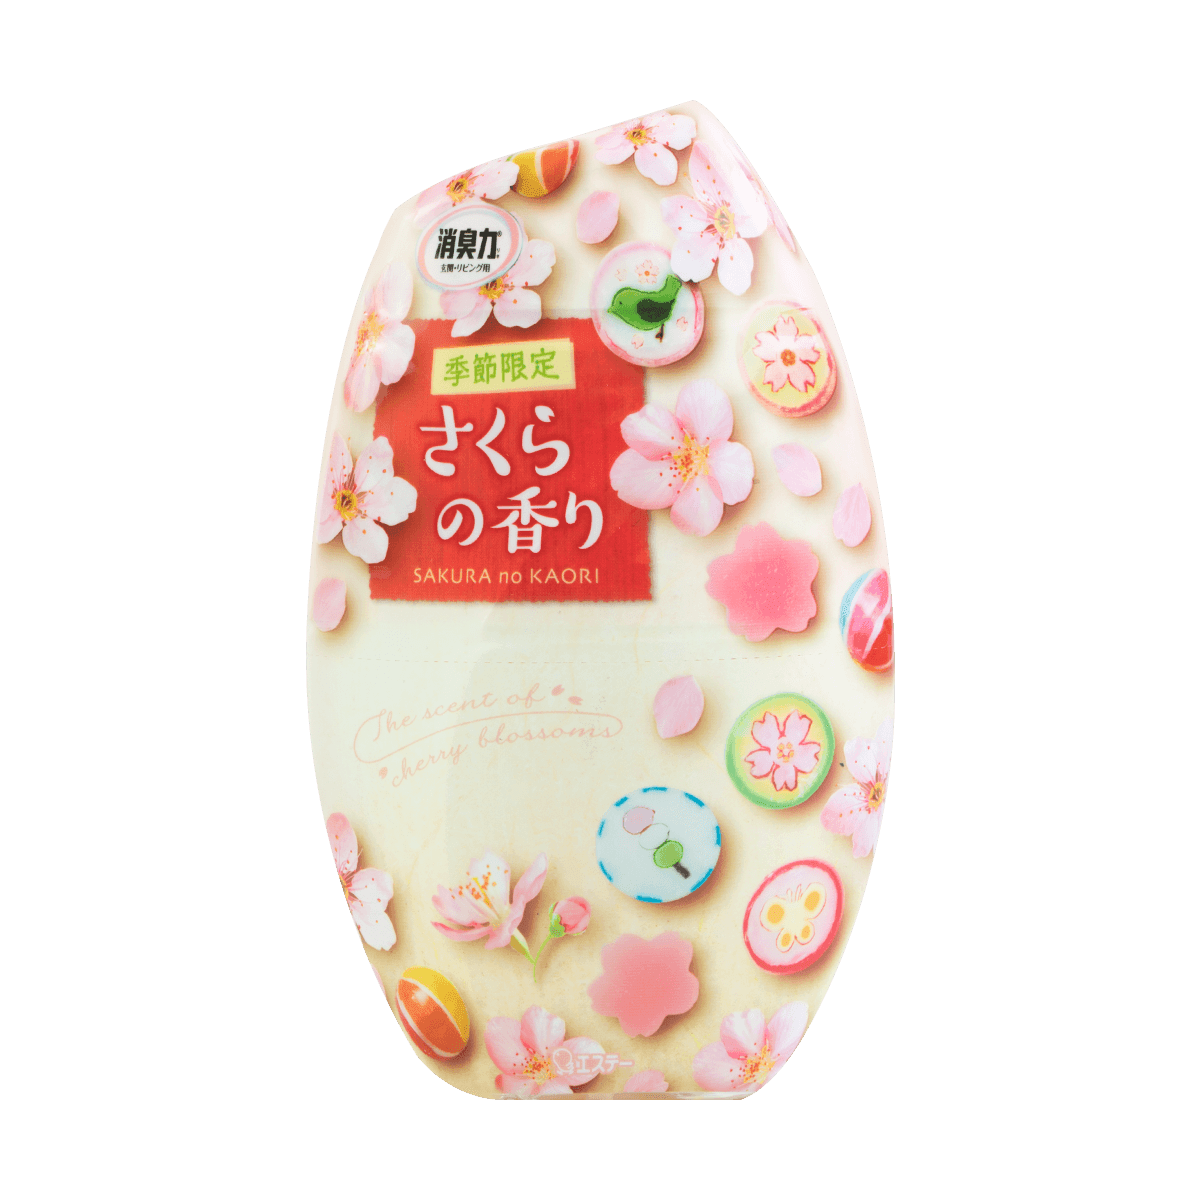 Yamibuy.com:Customer reviews:ST Premium Sakura Cherry Blossom Aroma Deodorizer 400ml Sakura Spring Limited Edition